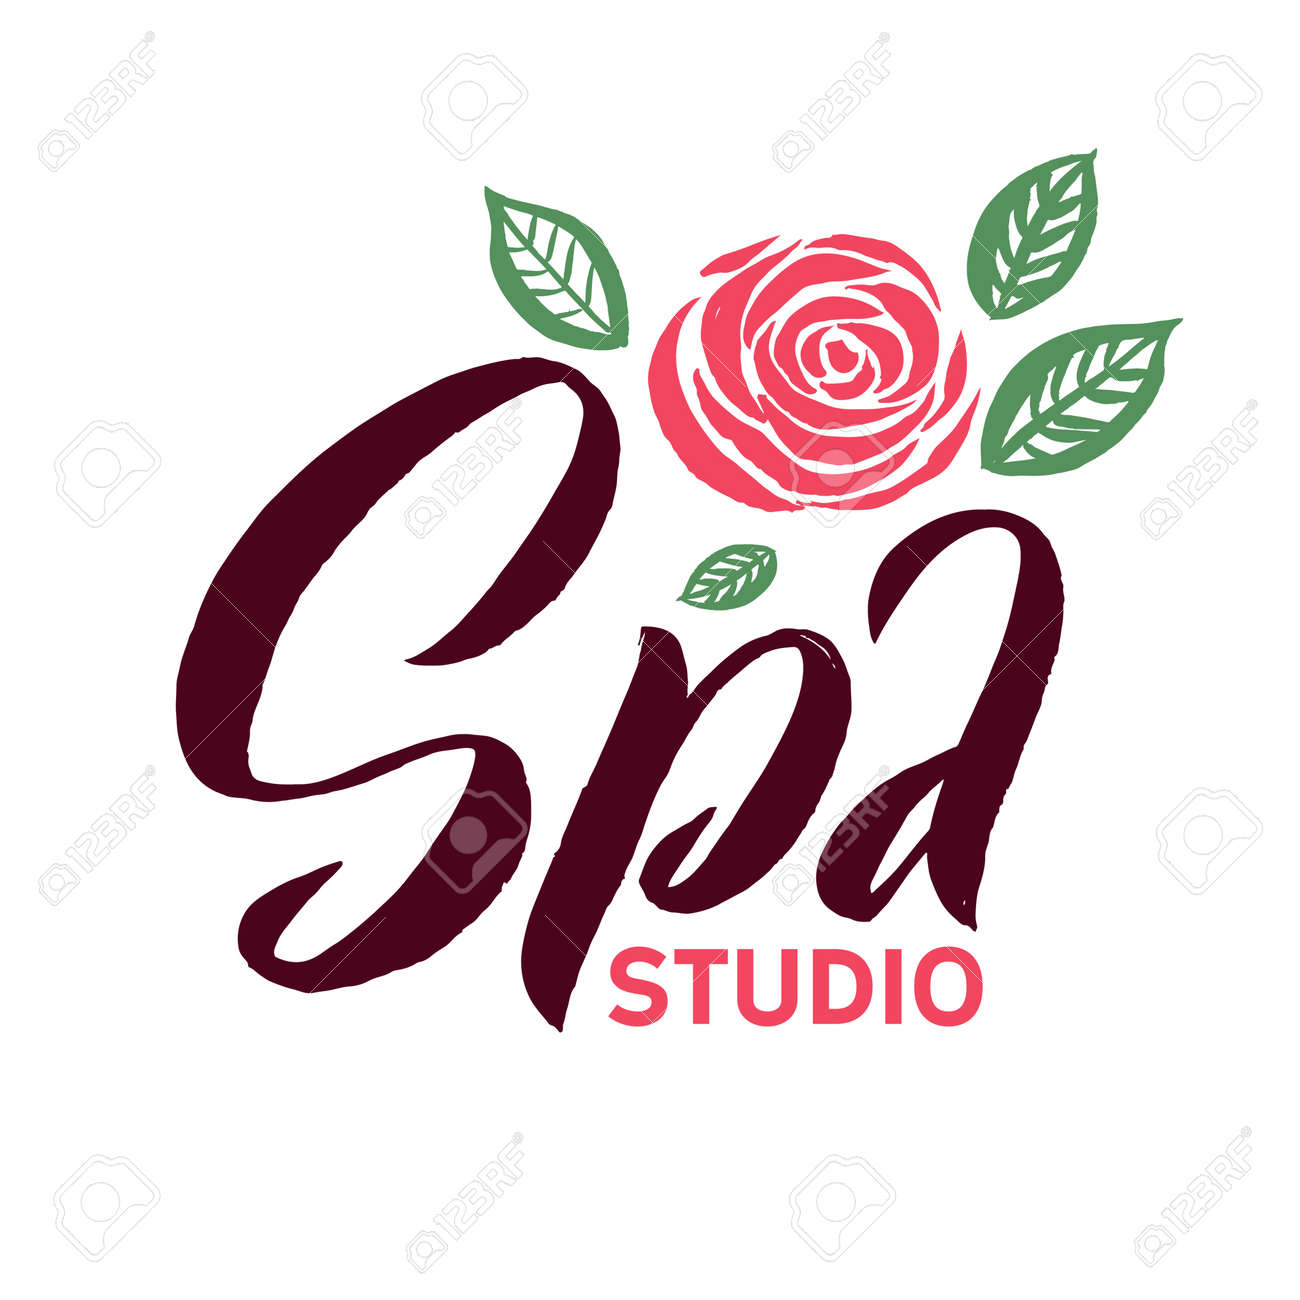 Spa Studio Vector Logo Stroke Pink Rose Flower Illustration